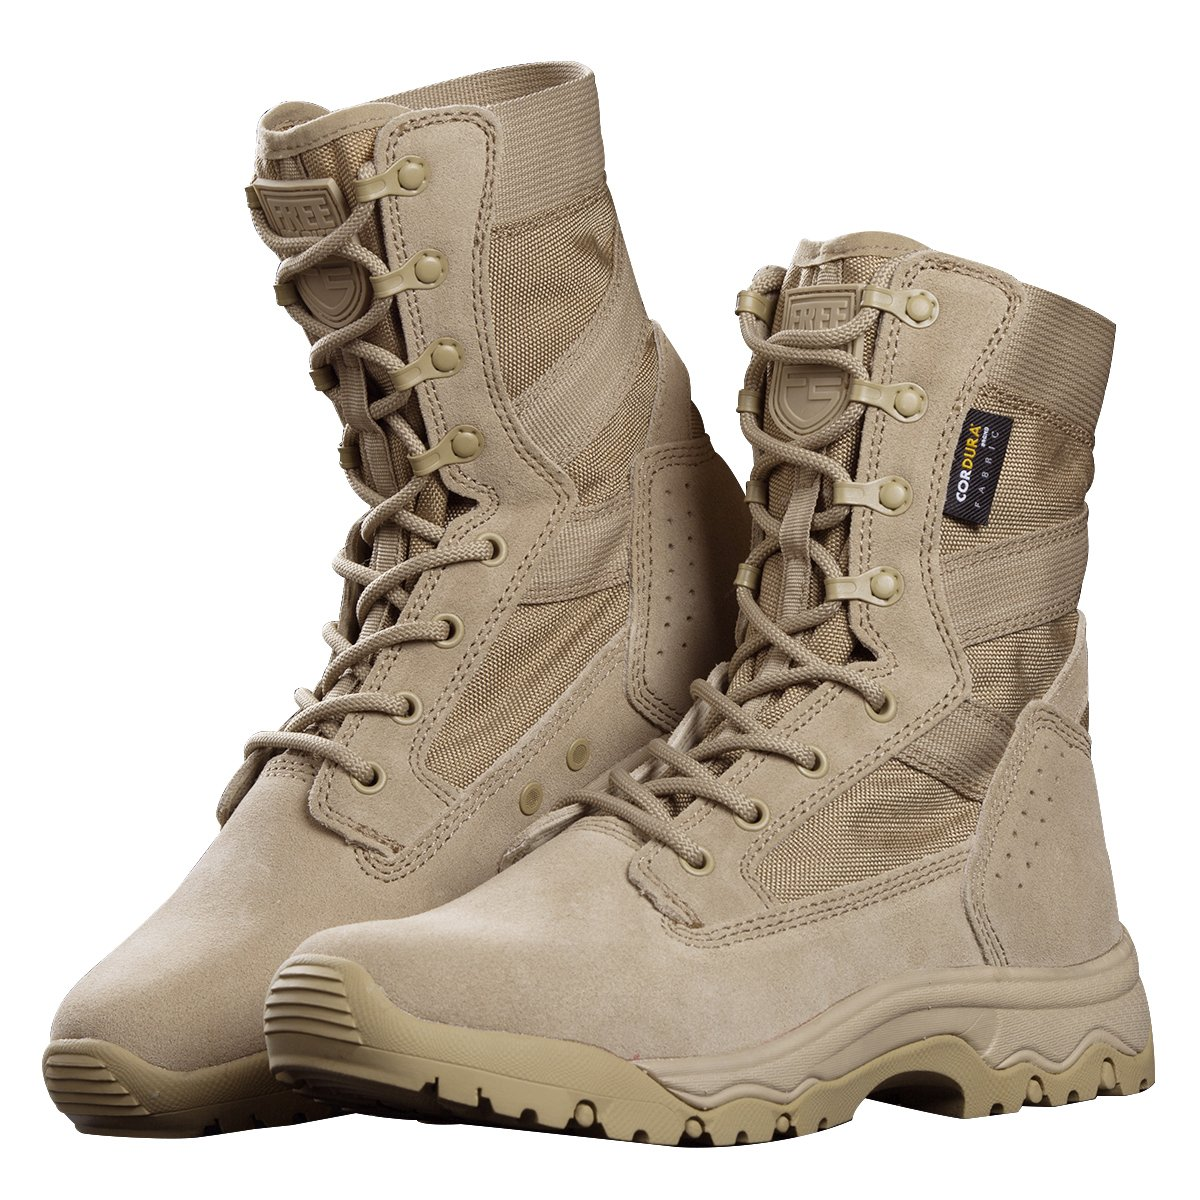 FREE SOLDIER Men's Tactical Boots 8'' inch Lightweight Combat Boots All Terrain Suede Leather Military Work Boots (Tan, 10.5 US)